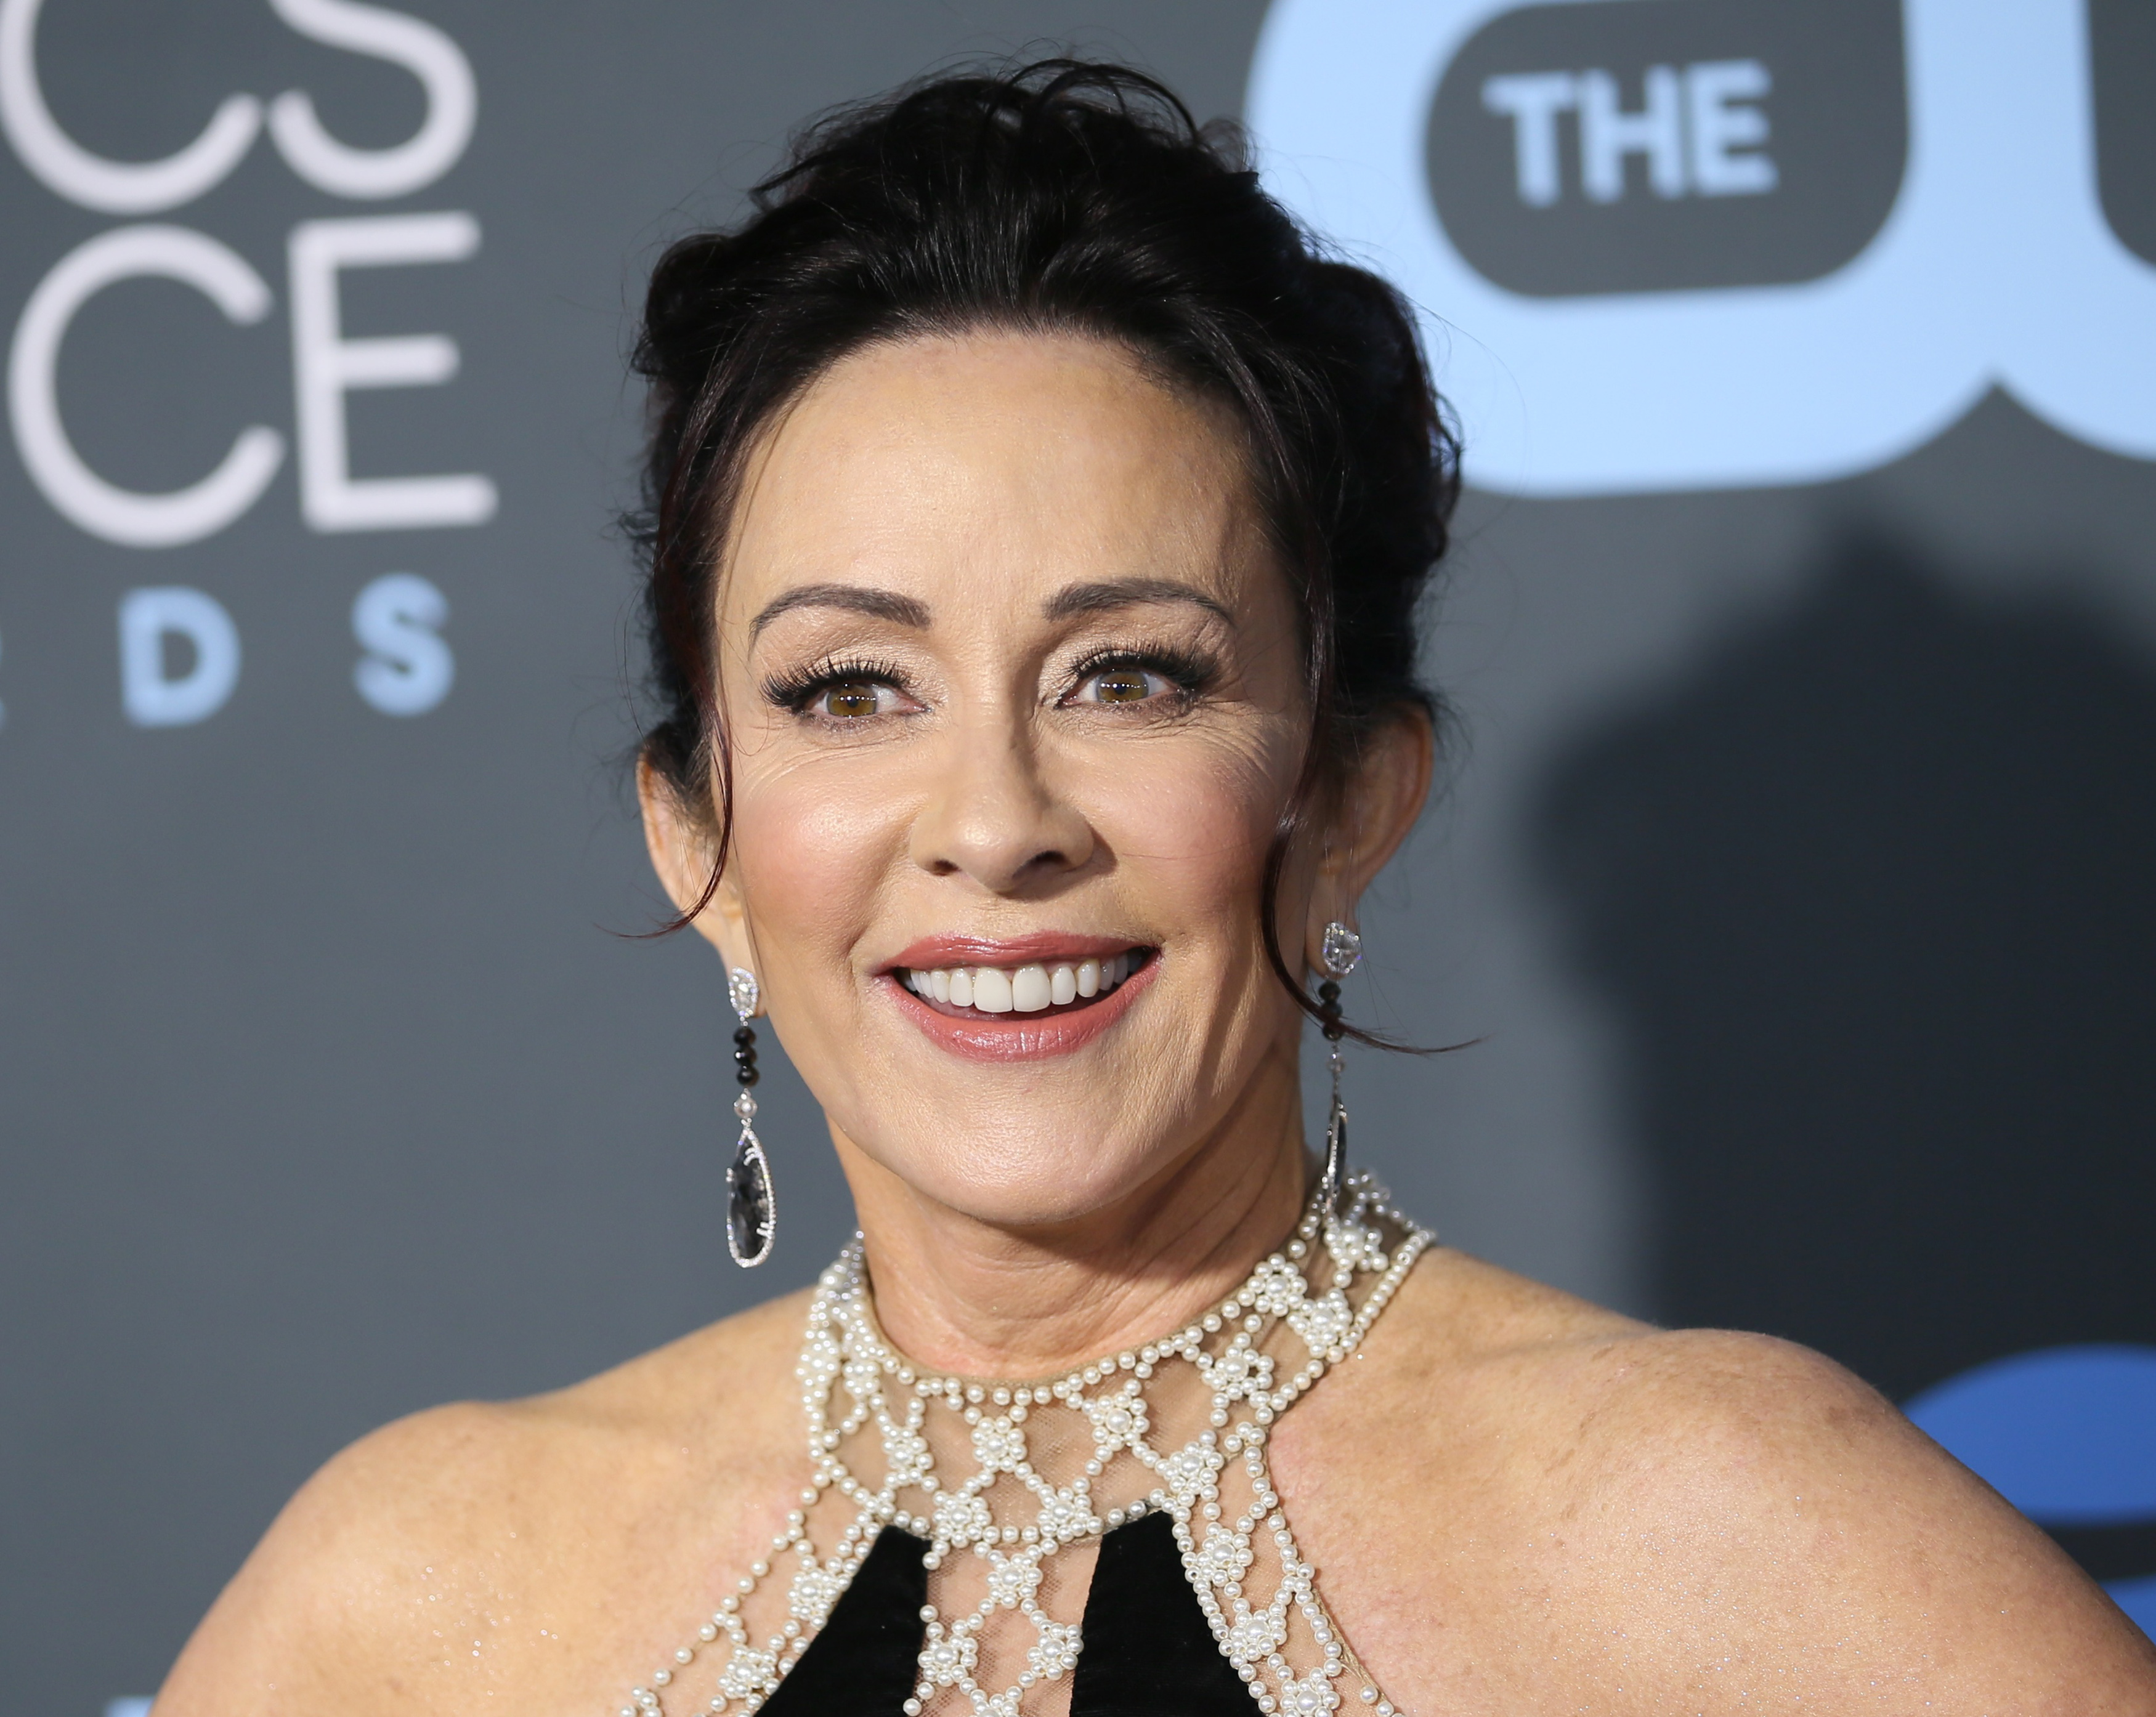 24th Critics Choice Awards – Arrivals – Santa Monica, California, U.S., January 13, 2019 - Patricia Heaton. REUTERS/Danny Moloshok